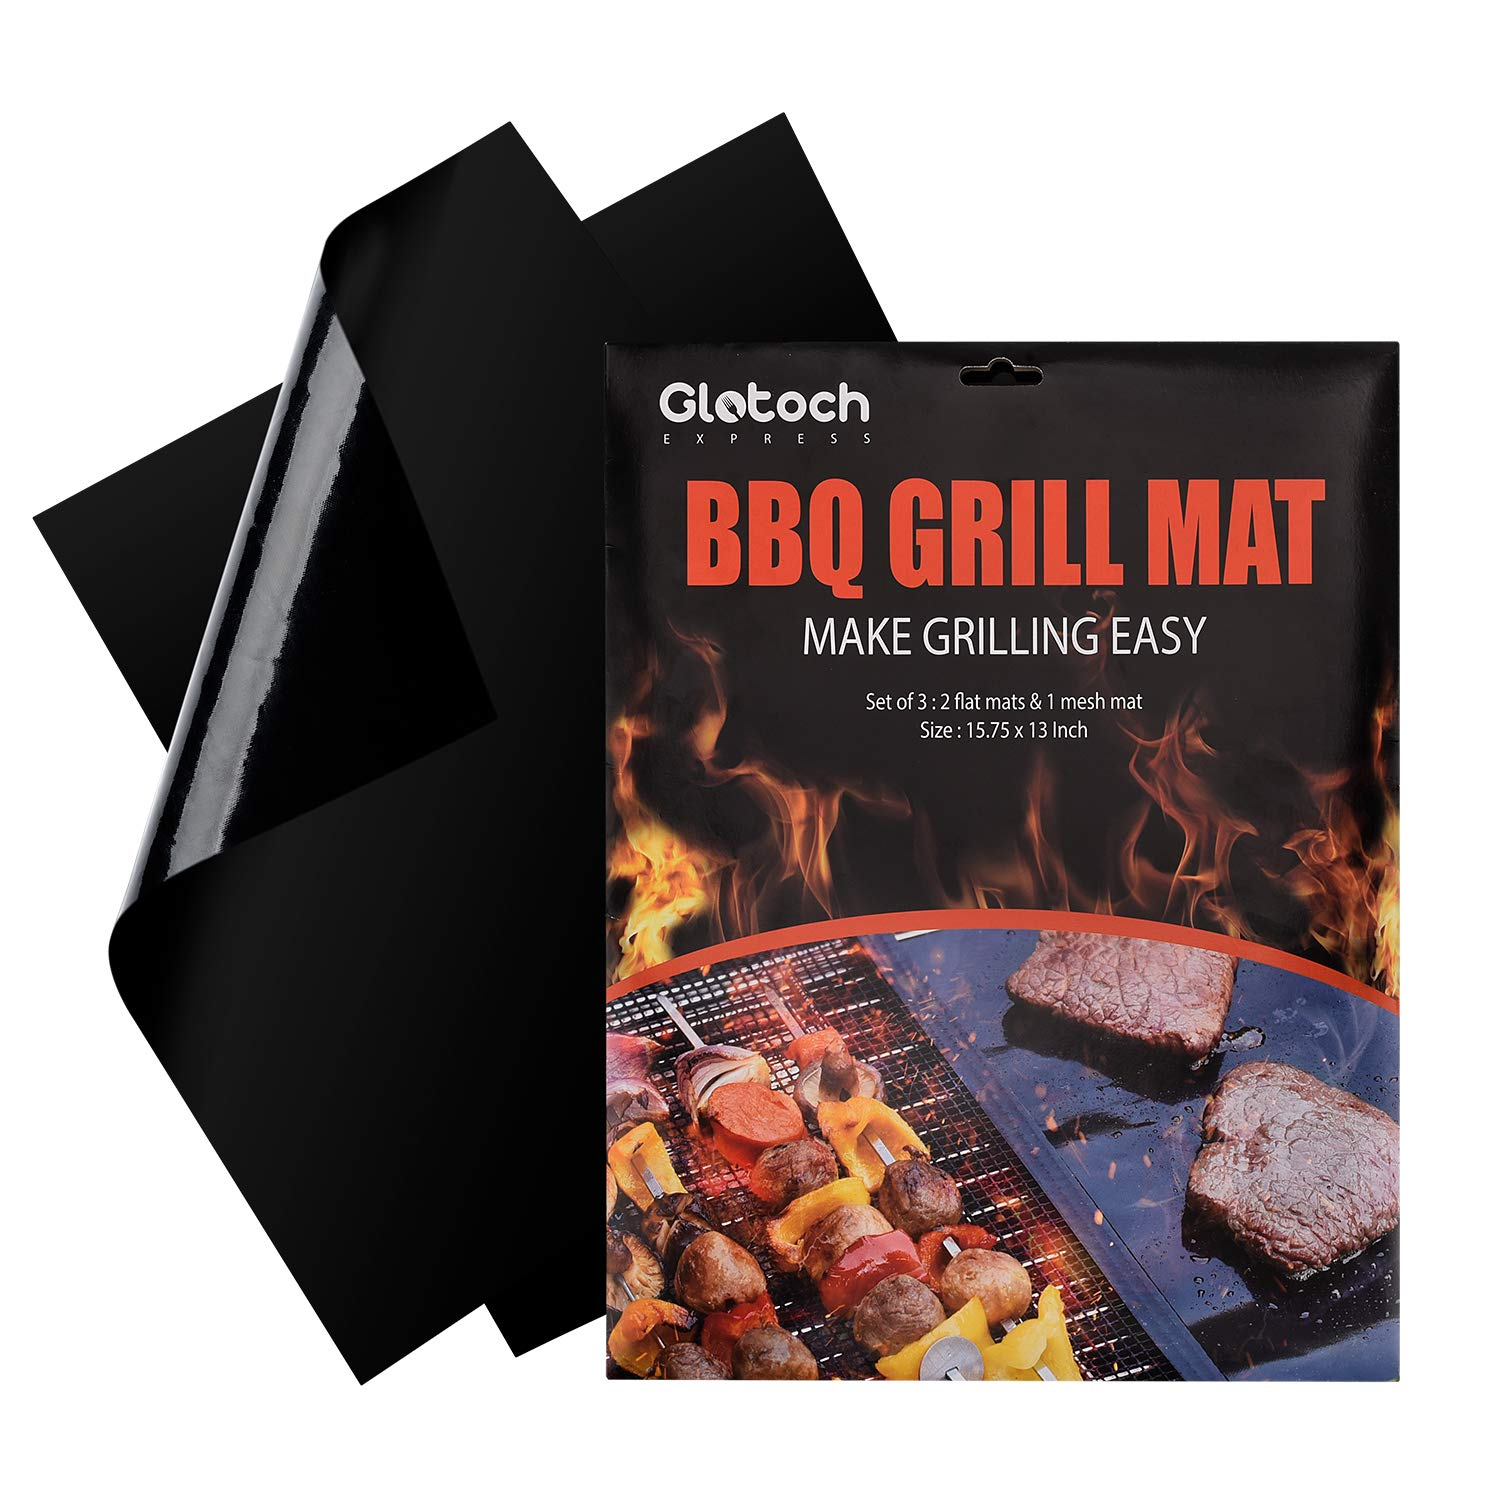 Grill Mat - Set of 3 Non Stick BBQ Grill Mats -Heavy Duty,Reusable and Dishwasher safe - Easy Clean & Easy Use on Gas, Charcoal, BBQ,Electric Grill